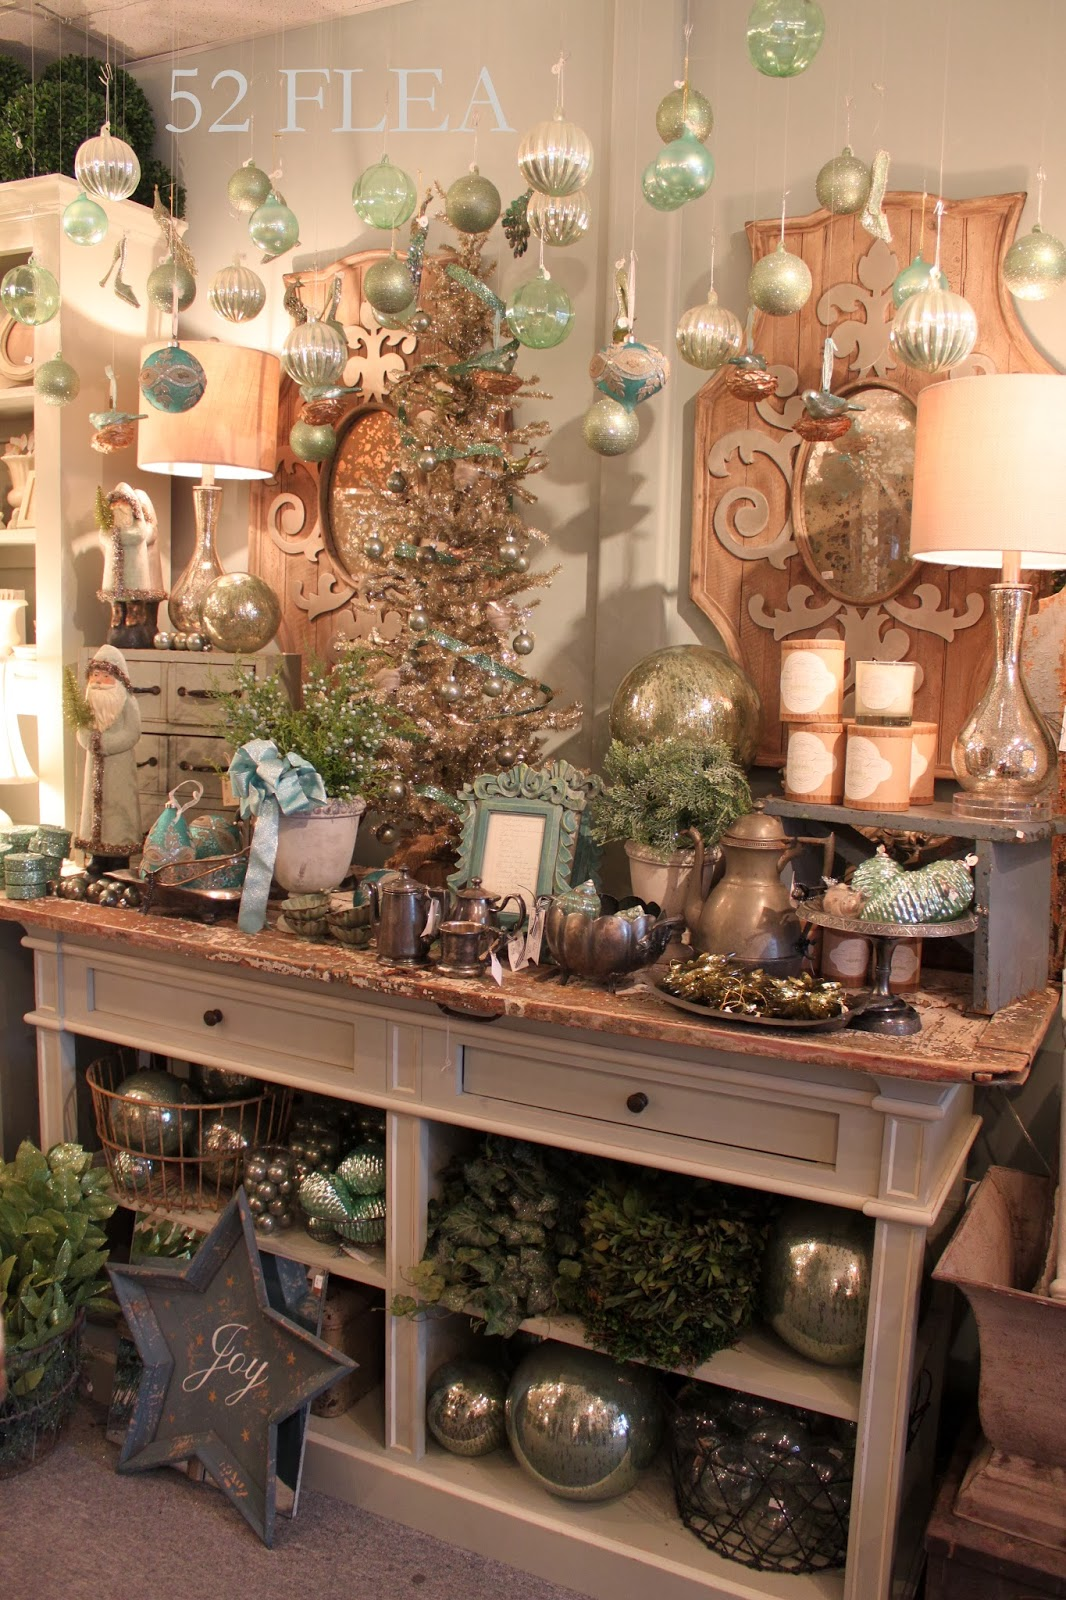 52 flea nest in mystic at christmas for The nest home decor